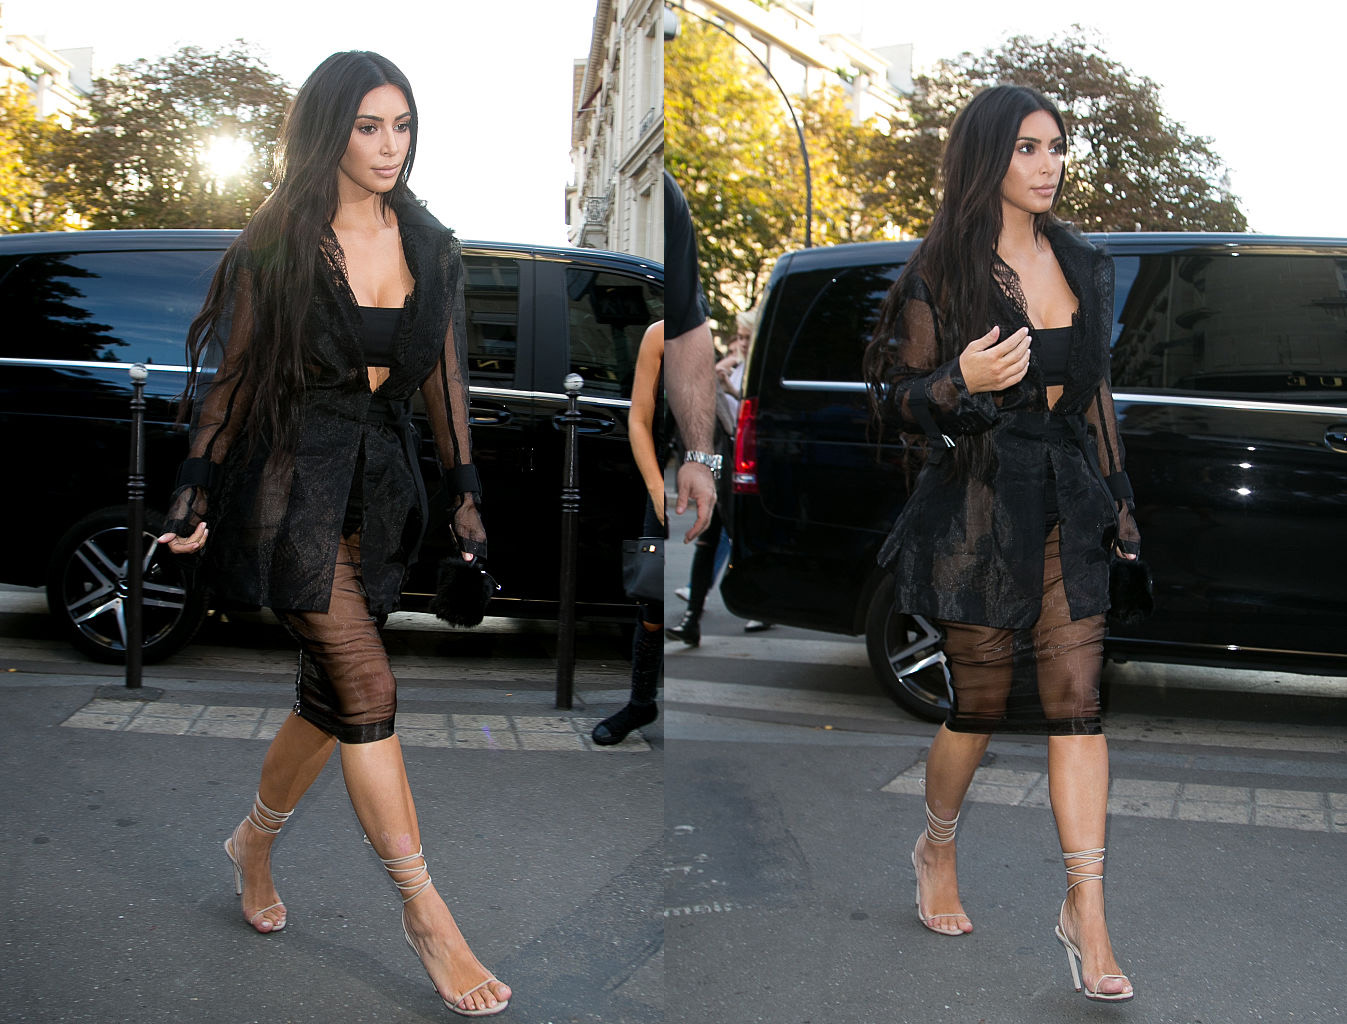 PARIS, FRANCE - SEPTEMBER 28:  Kim Kardashian West arrives at 'L'Avenue' restaurant on September 28, 2016 in Paris, France.  (Photo by Marc Piasecki/GC Images)